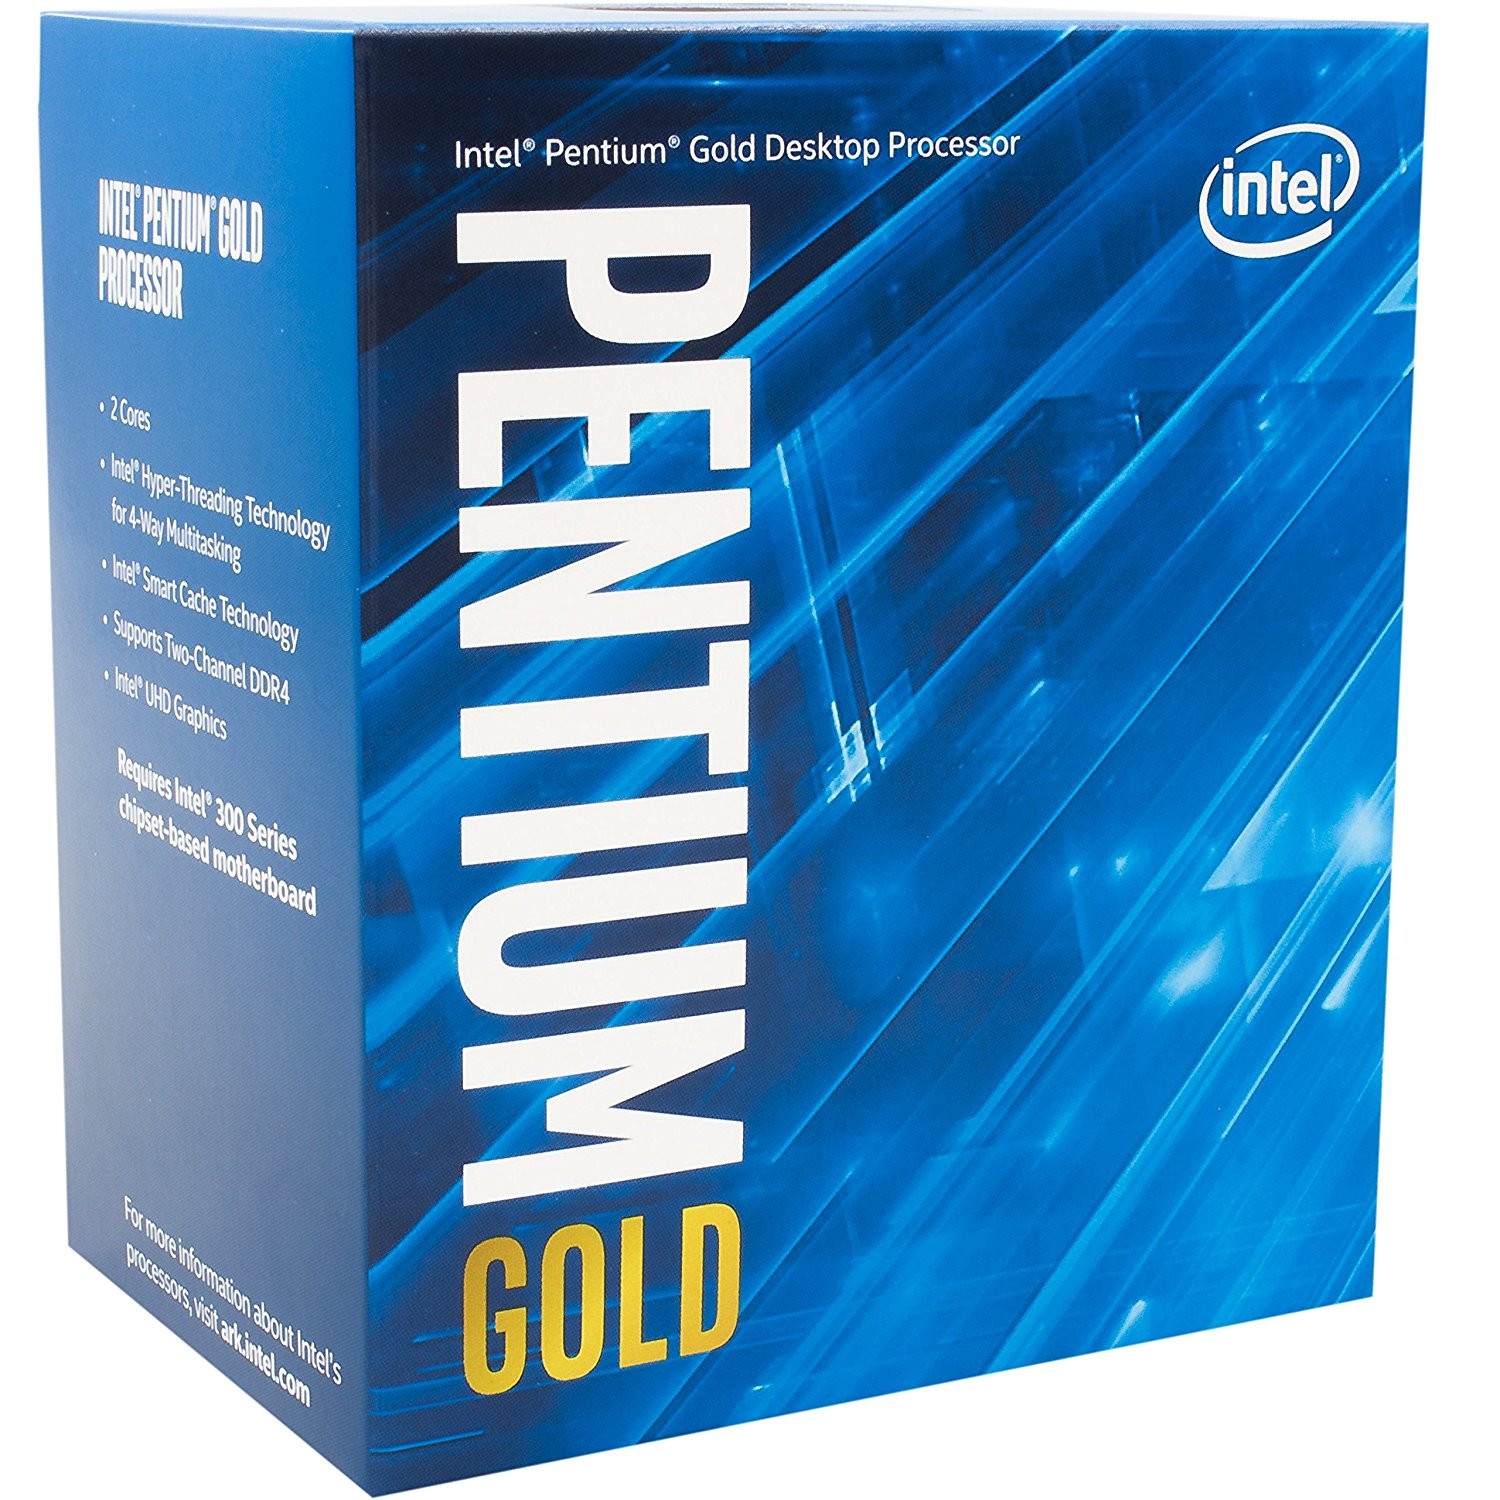 CPU Intel Pentium Gold G5500 3.8Ghz / 4MB / Socket 1151 (Coffee Lake )